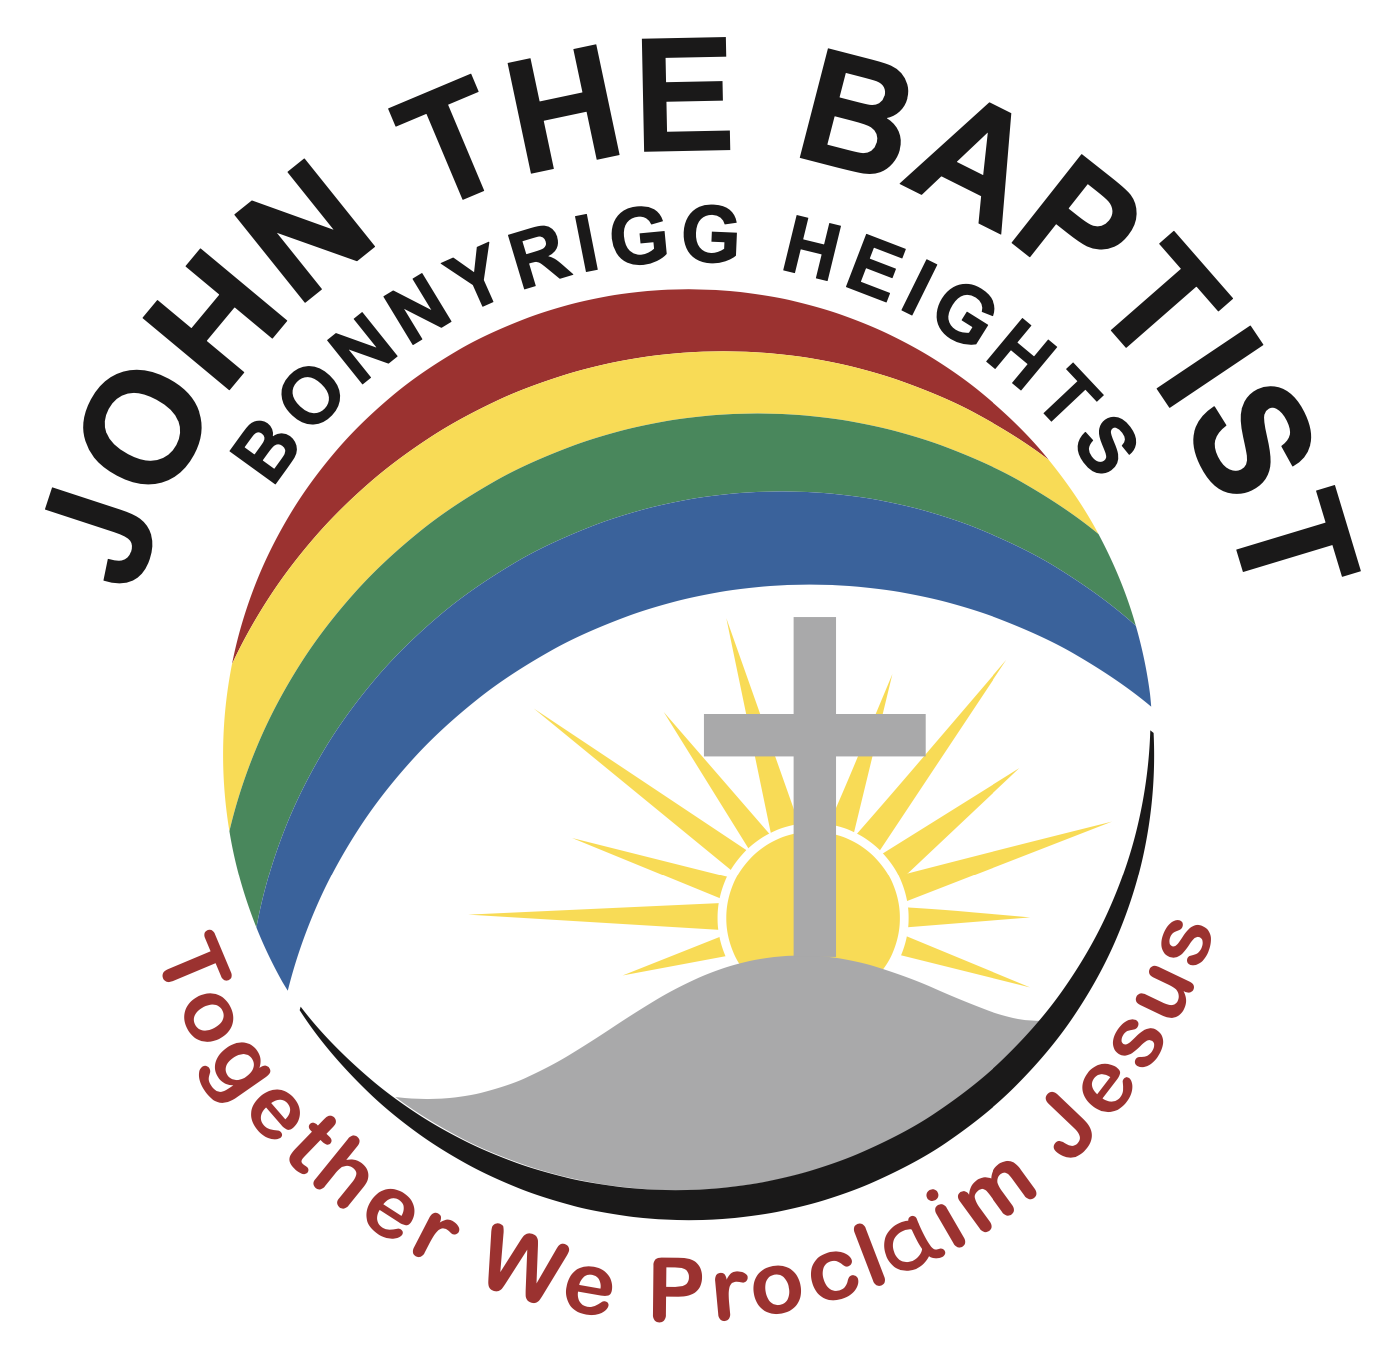 John the Baptist PS Bonnyrigg